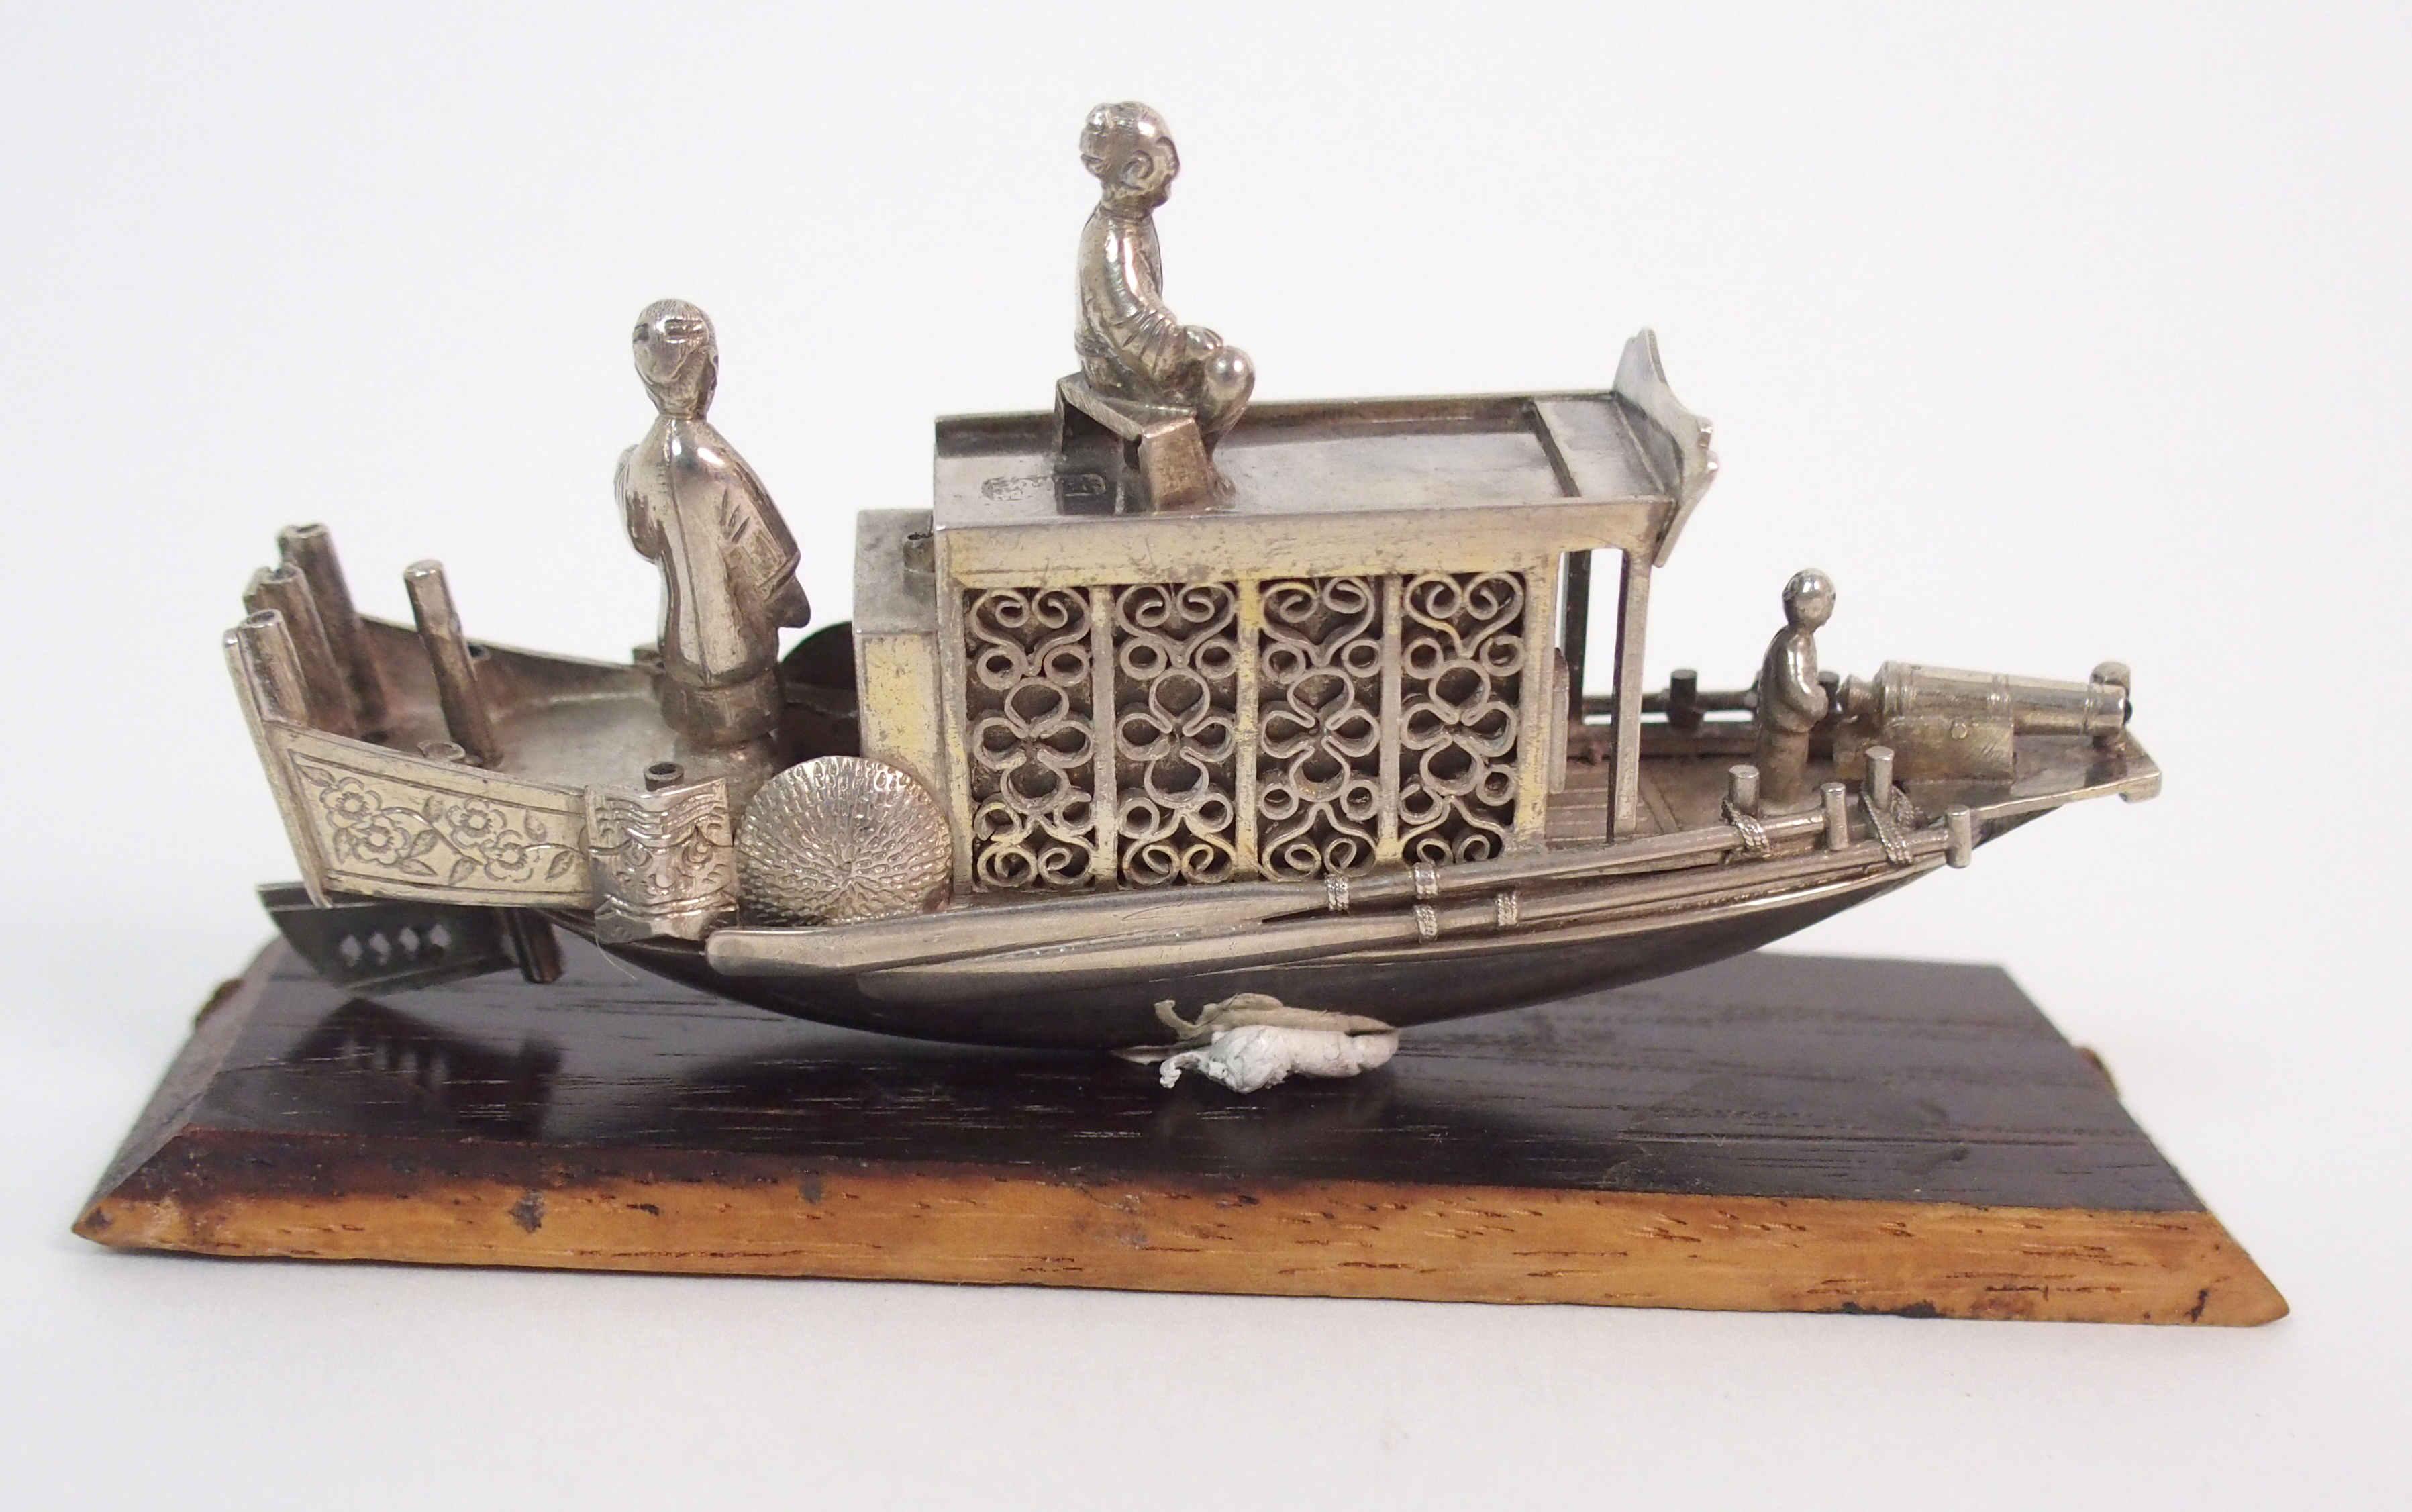 Lot 48 - A CHINESE WHITE METAL JUNK of traditional type, 8.5cm wide, wood base, 51 grams overall weight and